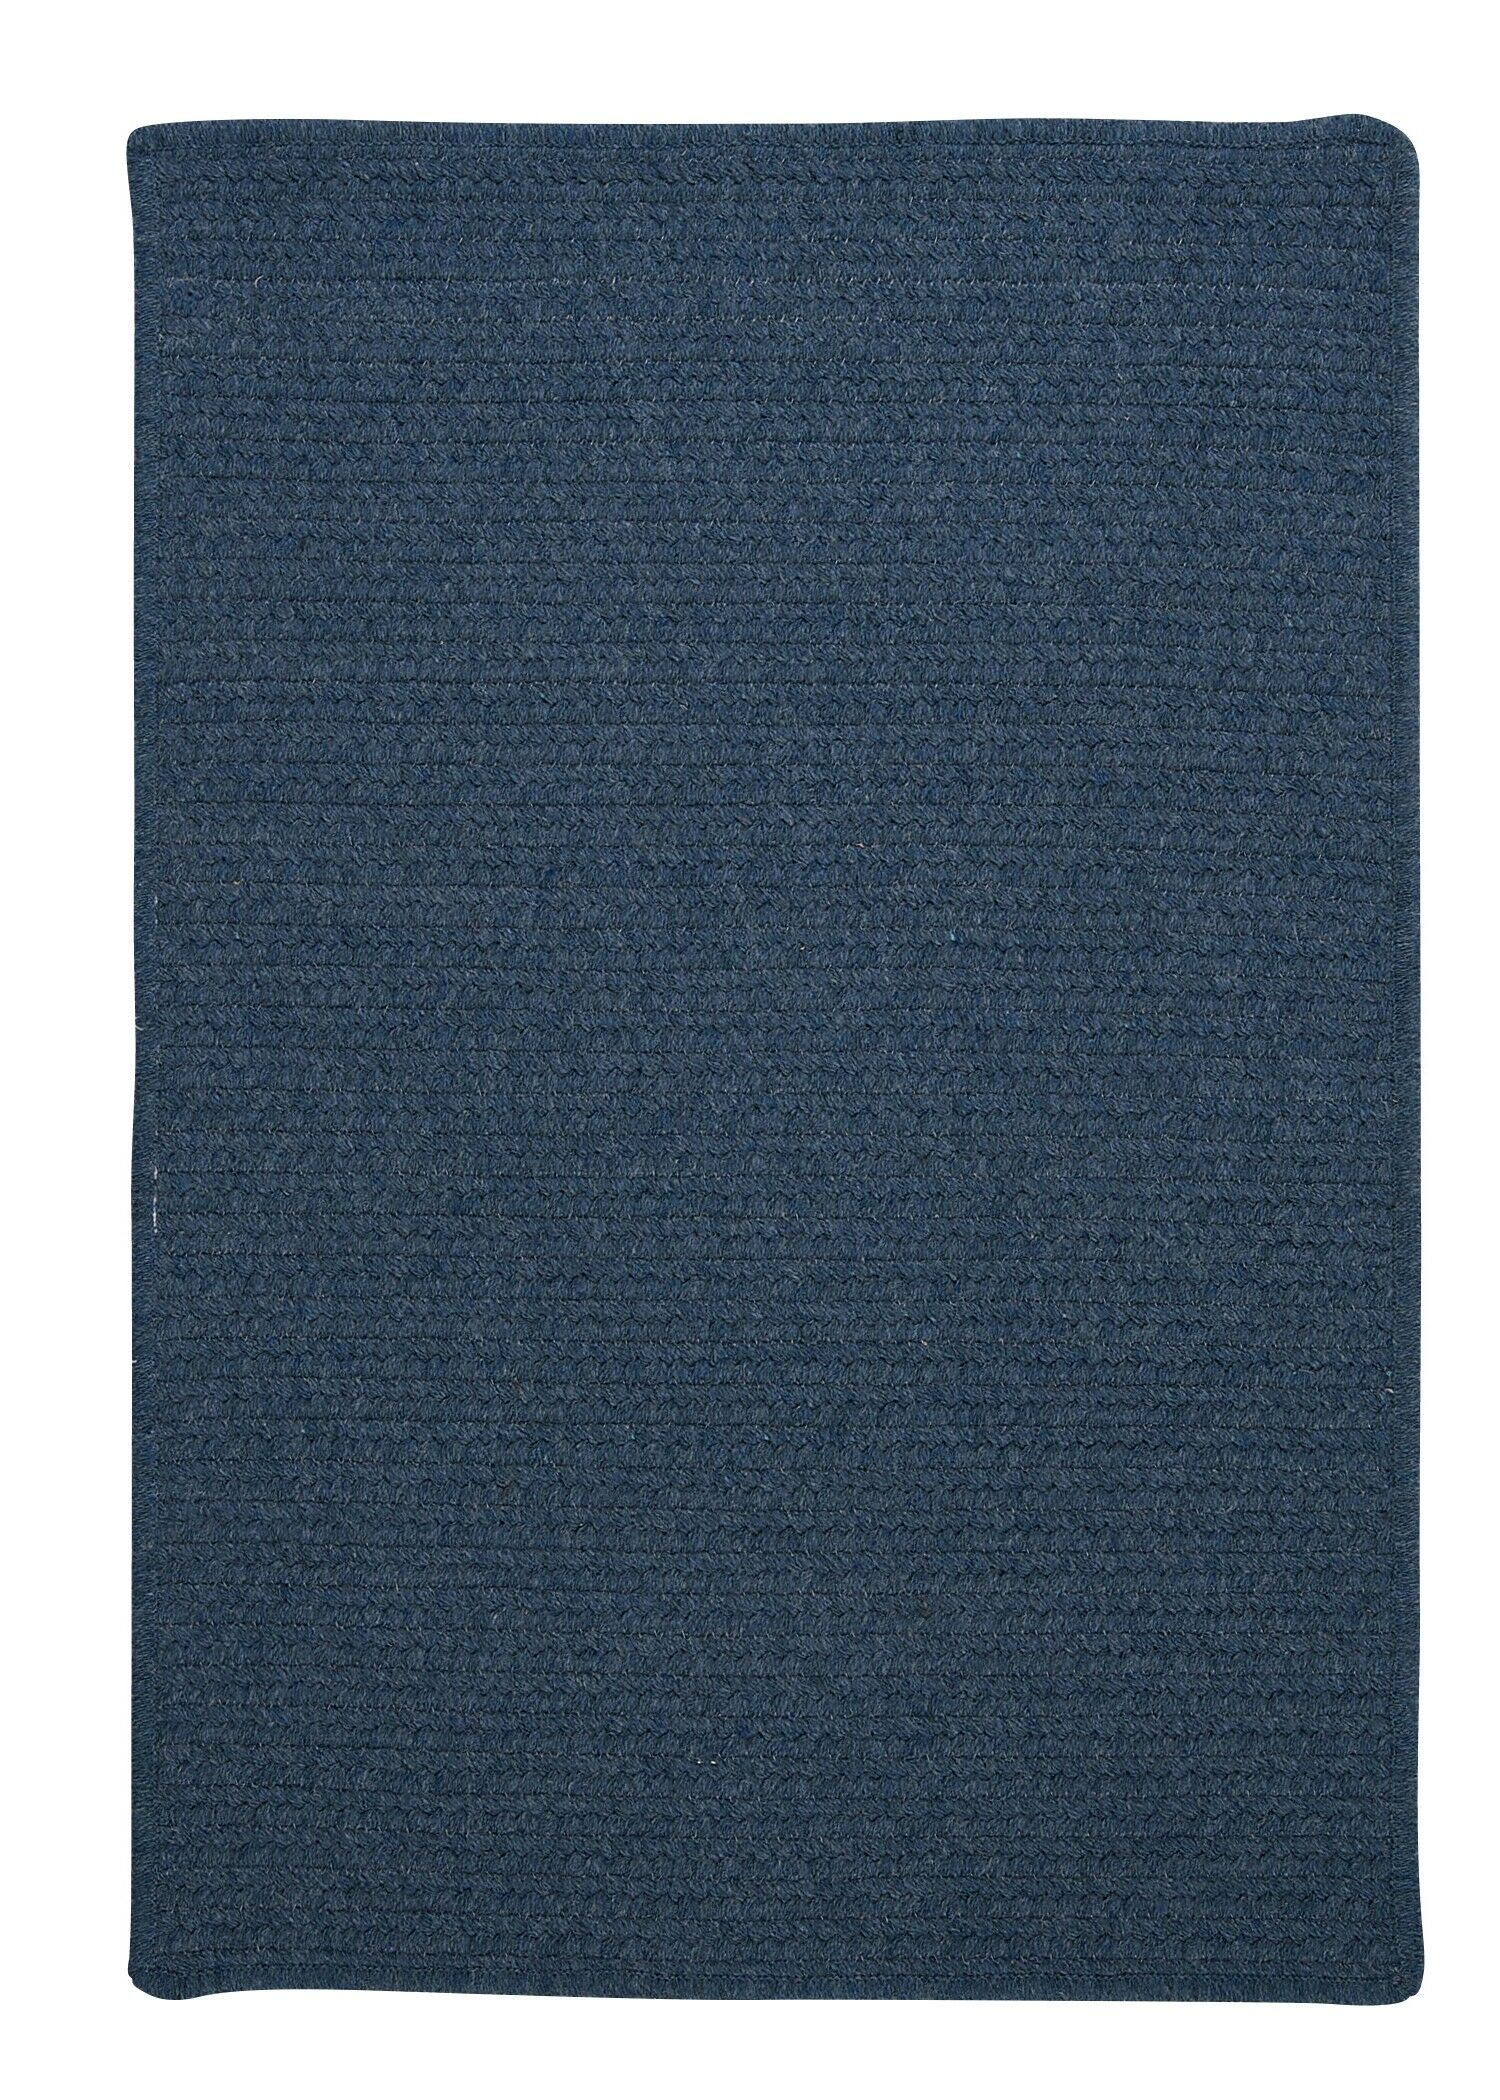 Westminster Federal Blue Area Rug Fringe: Included, Rug Size: Square 4'